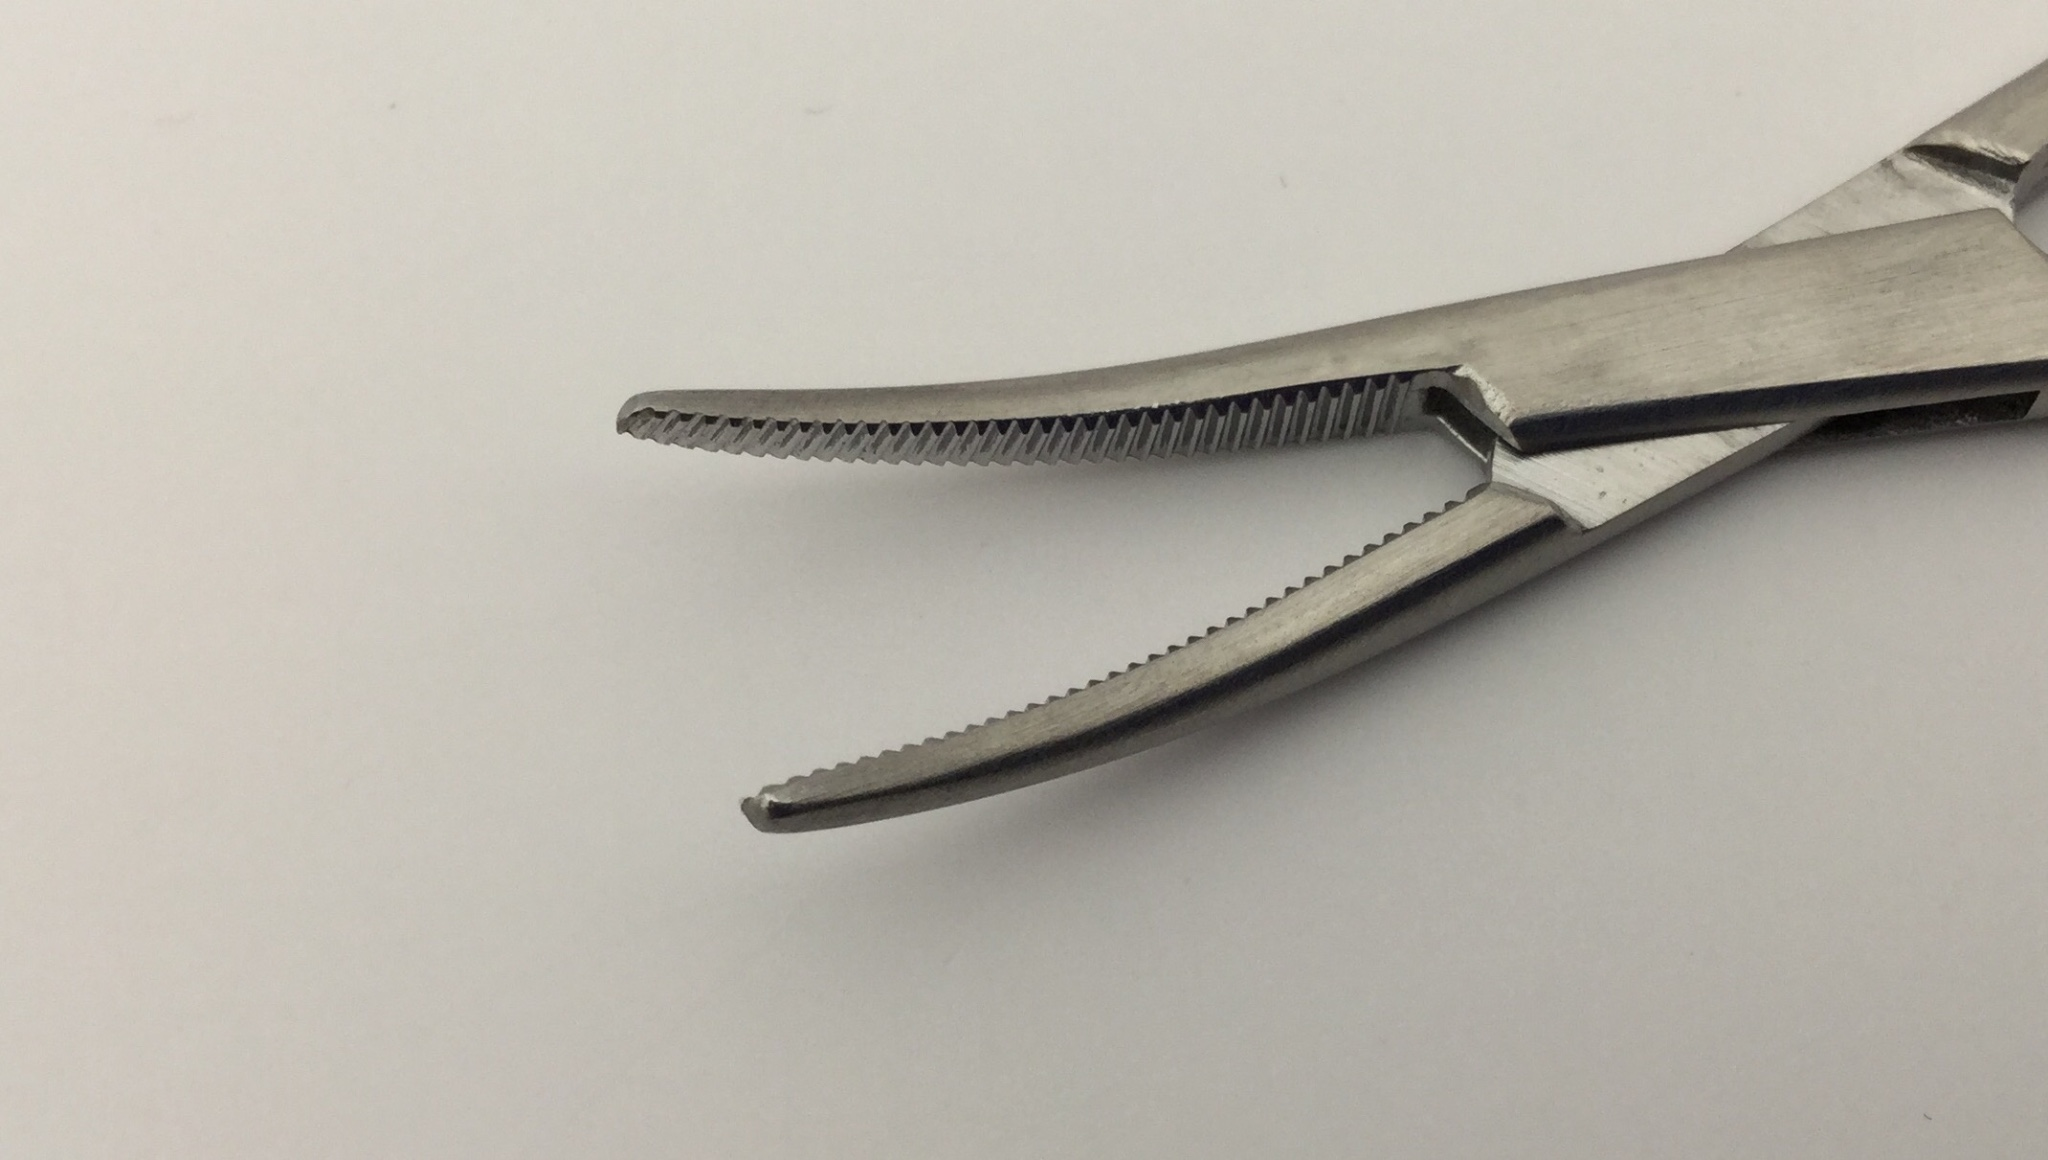 Jarit 106-102 Curved Hartman Mosquito Forceps 5